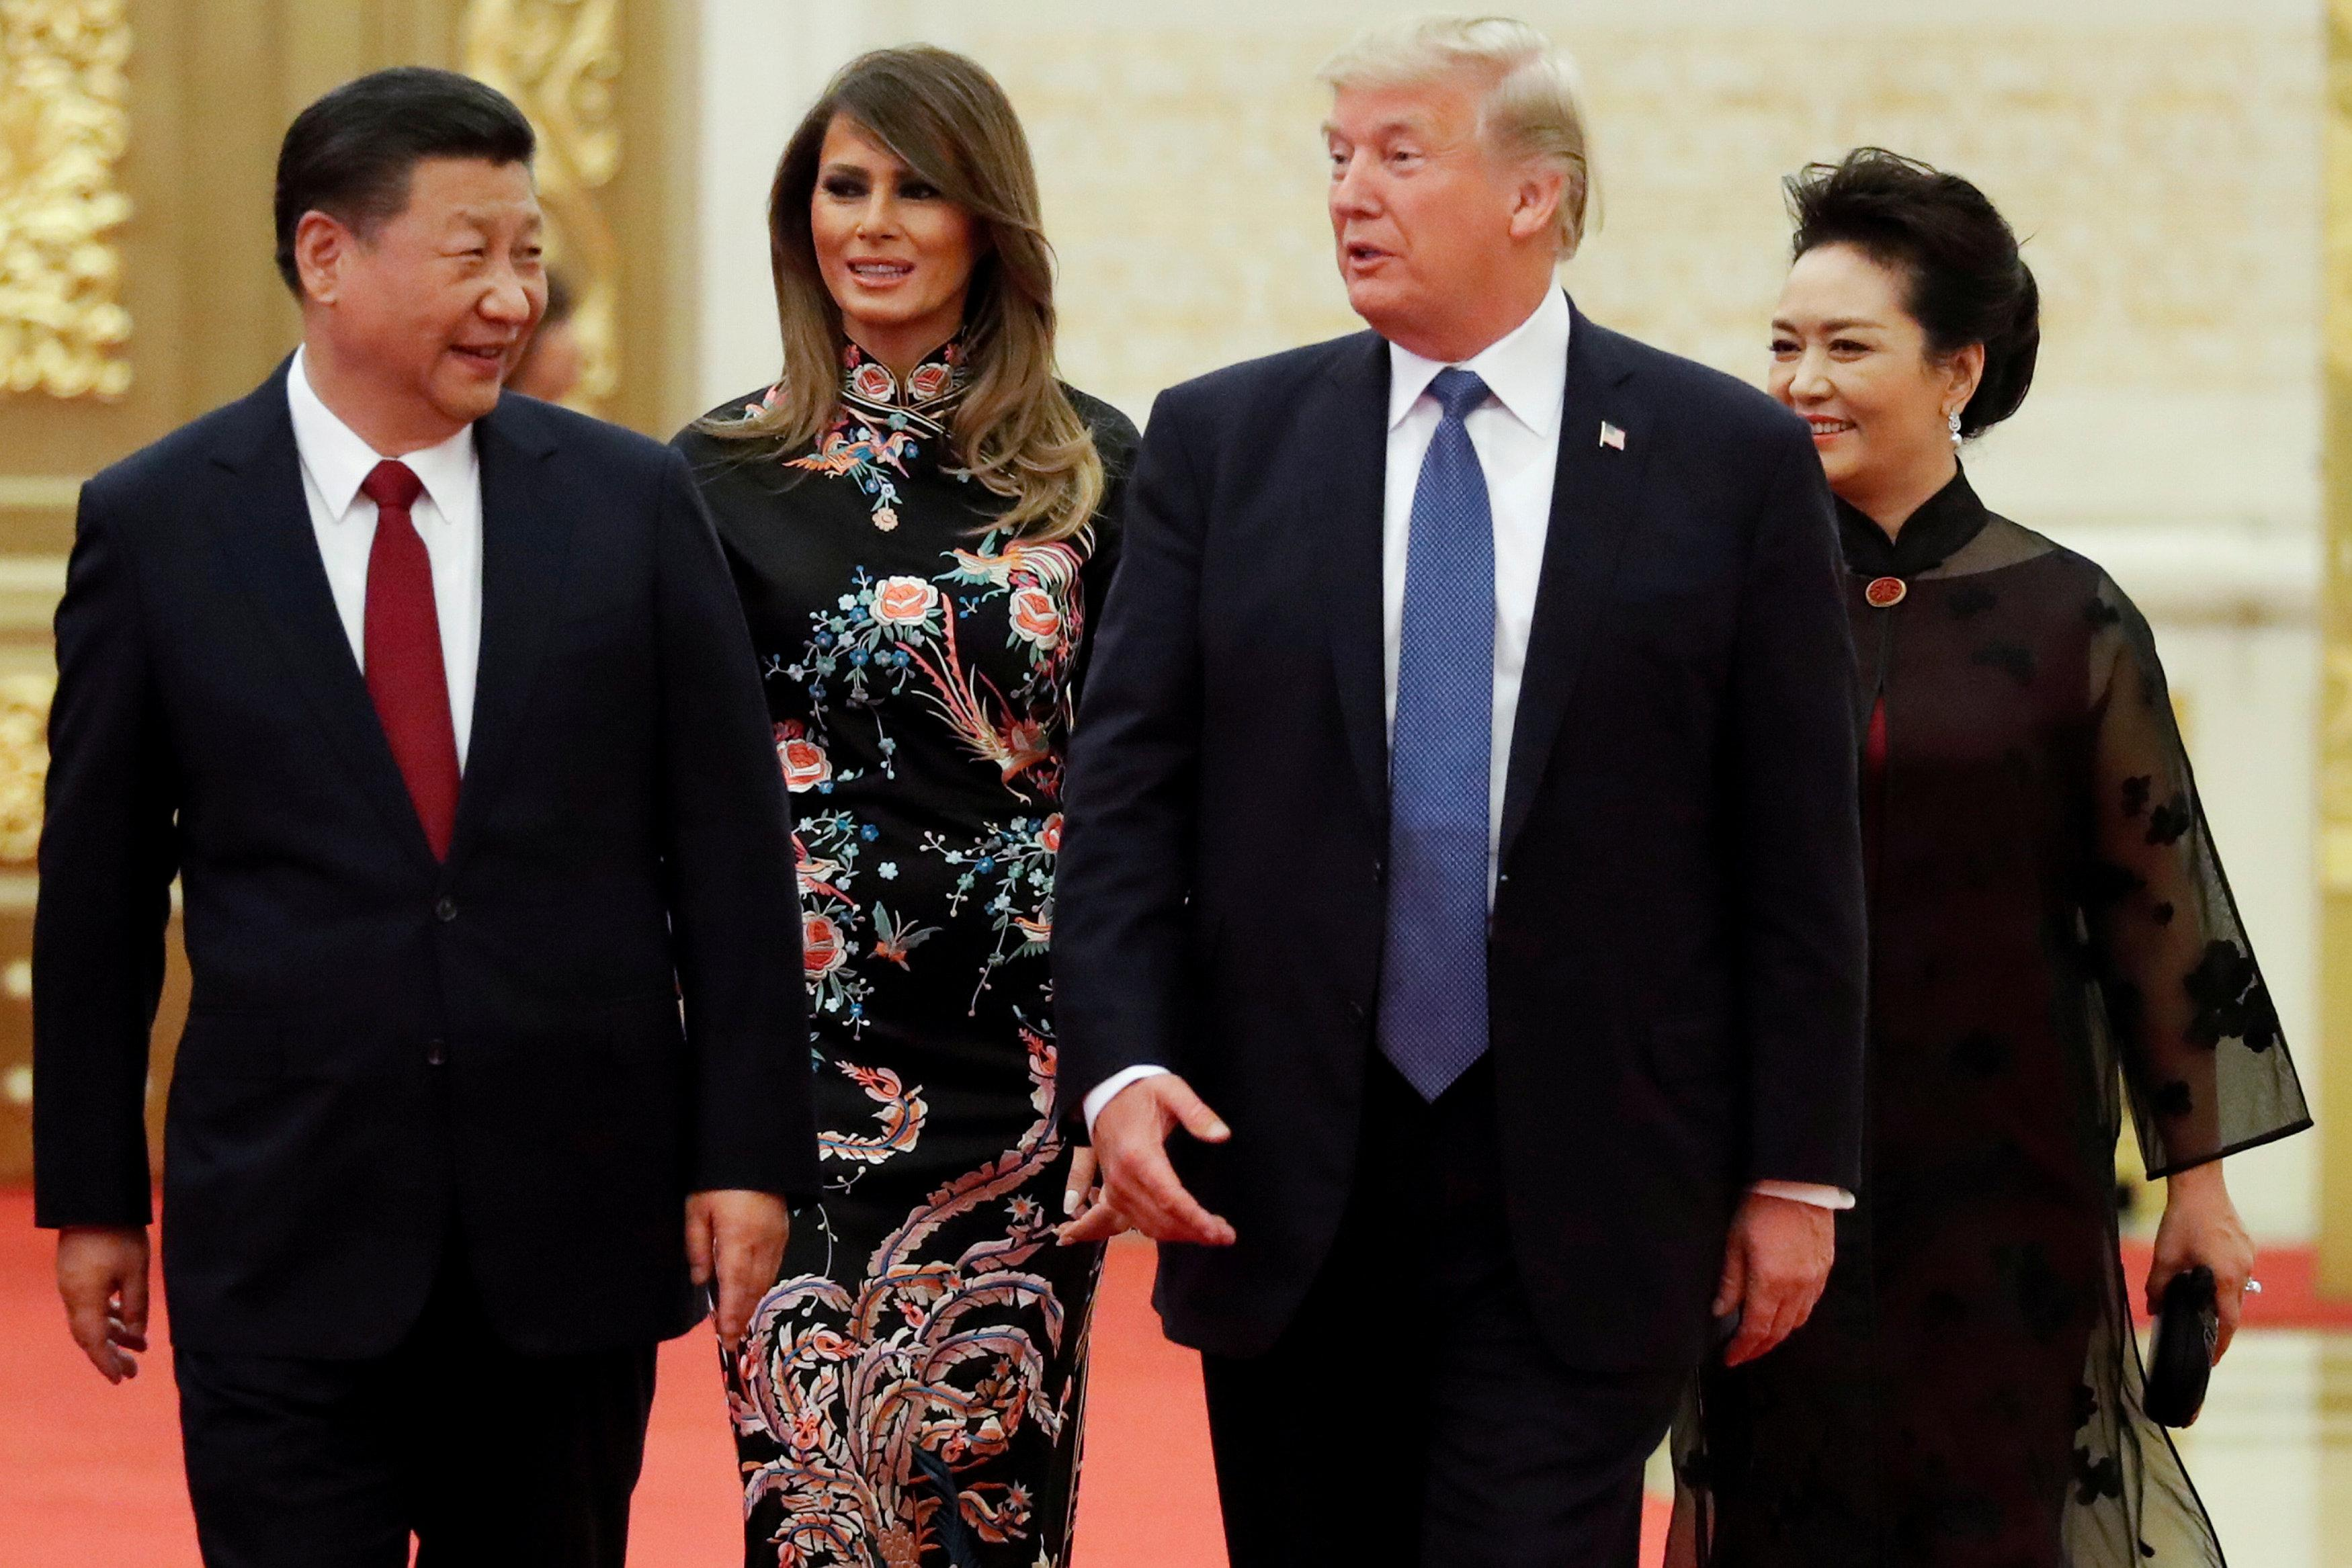 U.S. President Donald Trump and first lady Melania arrive for the state dinner with China's President Xi Jinping and China's first lady Peng Liyuan at the Great Hall of the People in Beijing, China, November 9, 2017. Jonathan Ernst